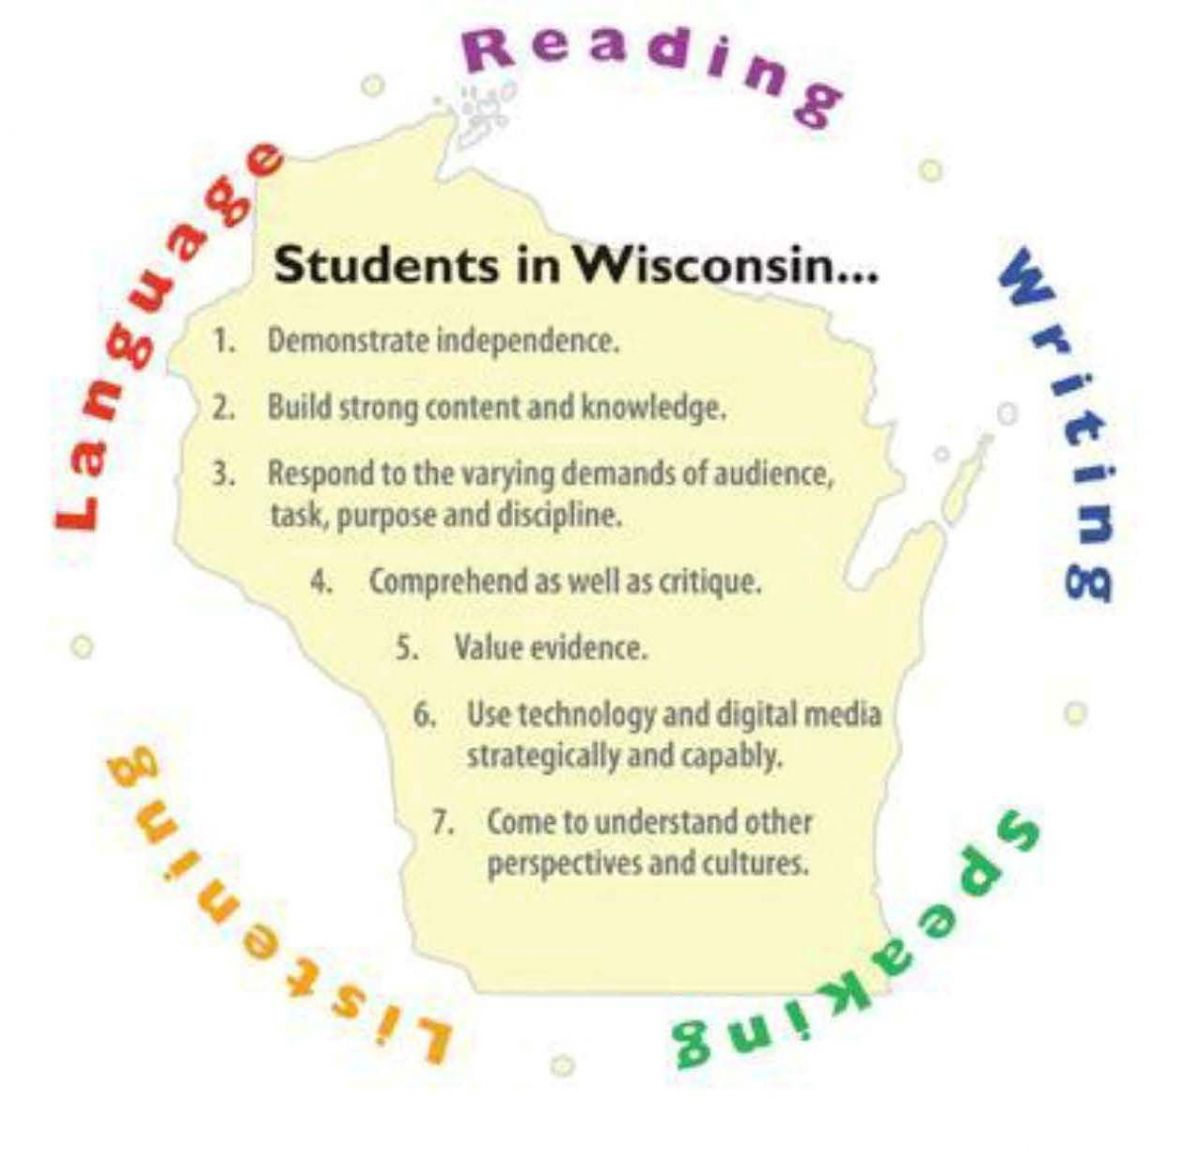 Students in Wisconsin graphic